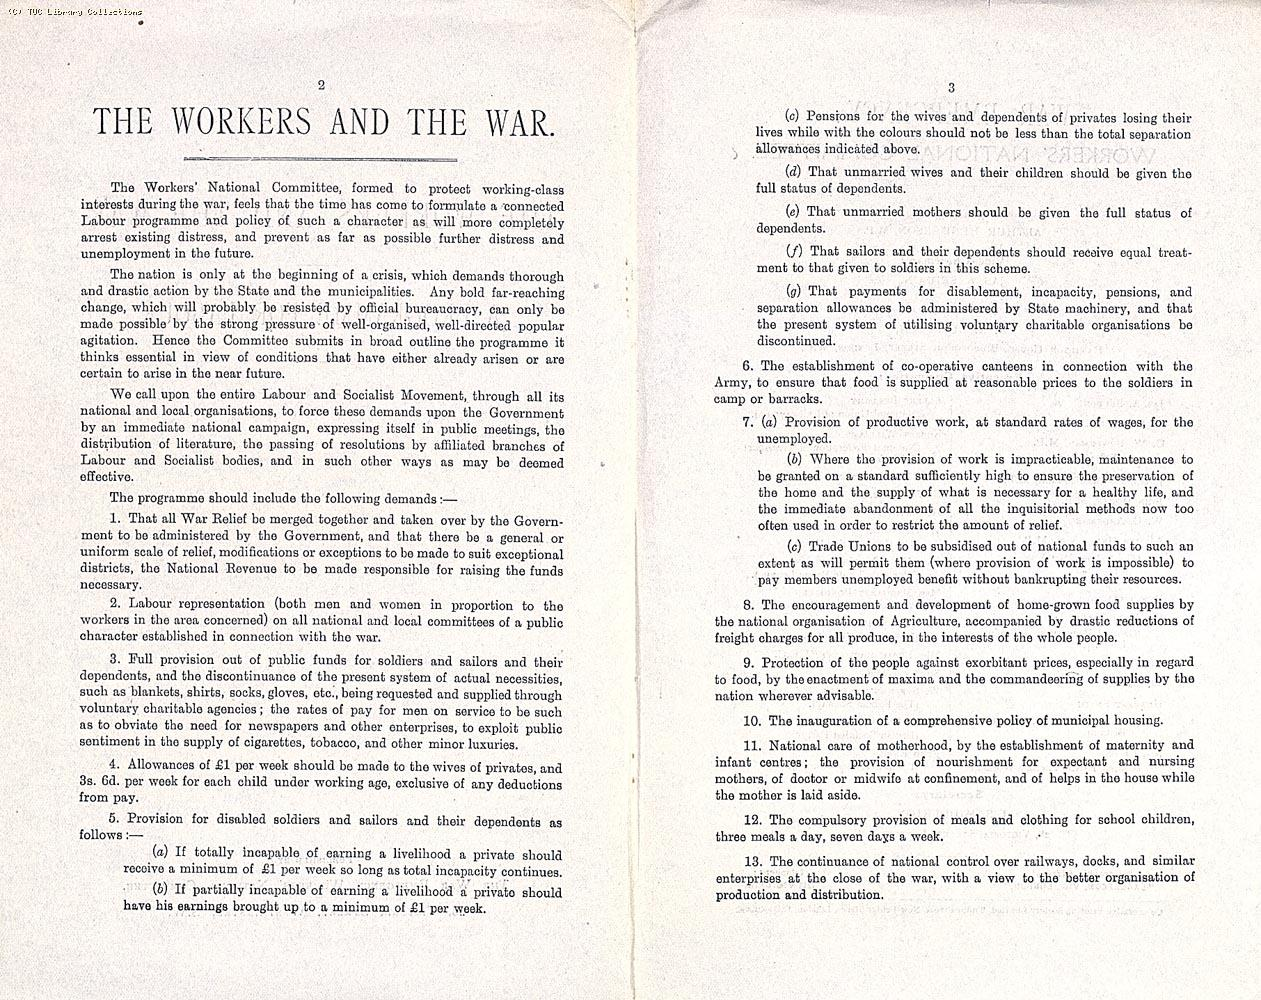 'The Workers and the War: a Programme for Labour' was written by Sidney Webb and distributed by the War Emergency Workers' National Committee (WEWNC) in 1914